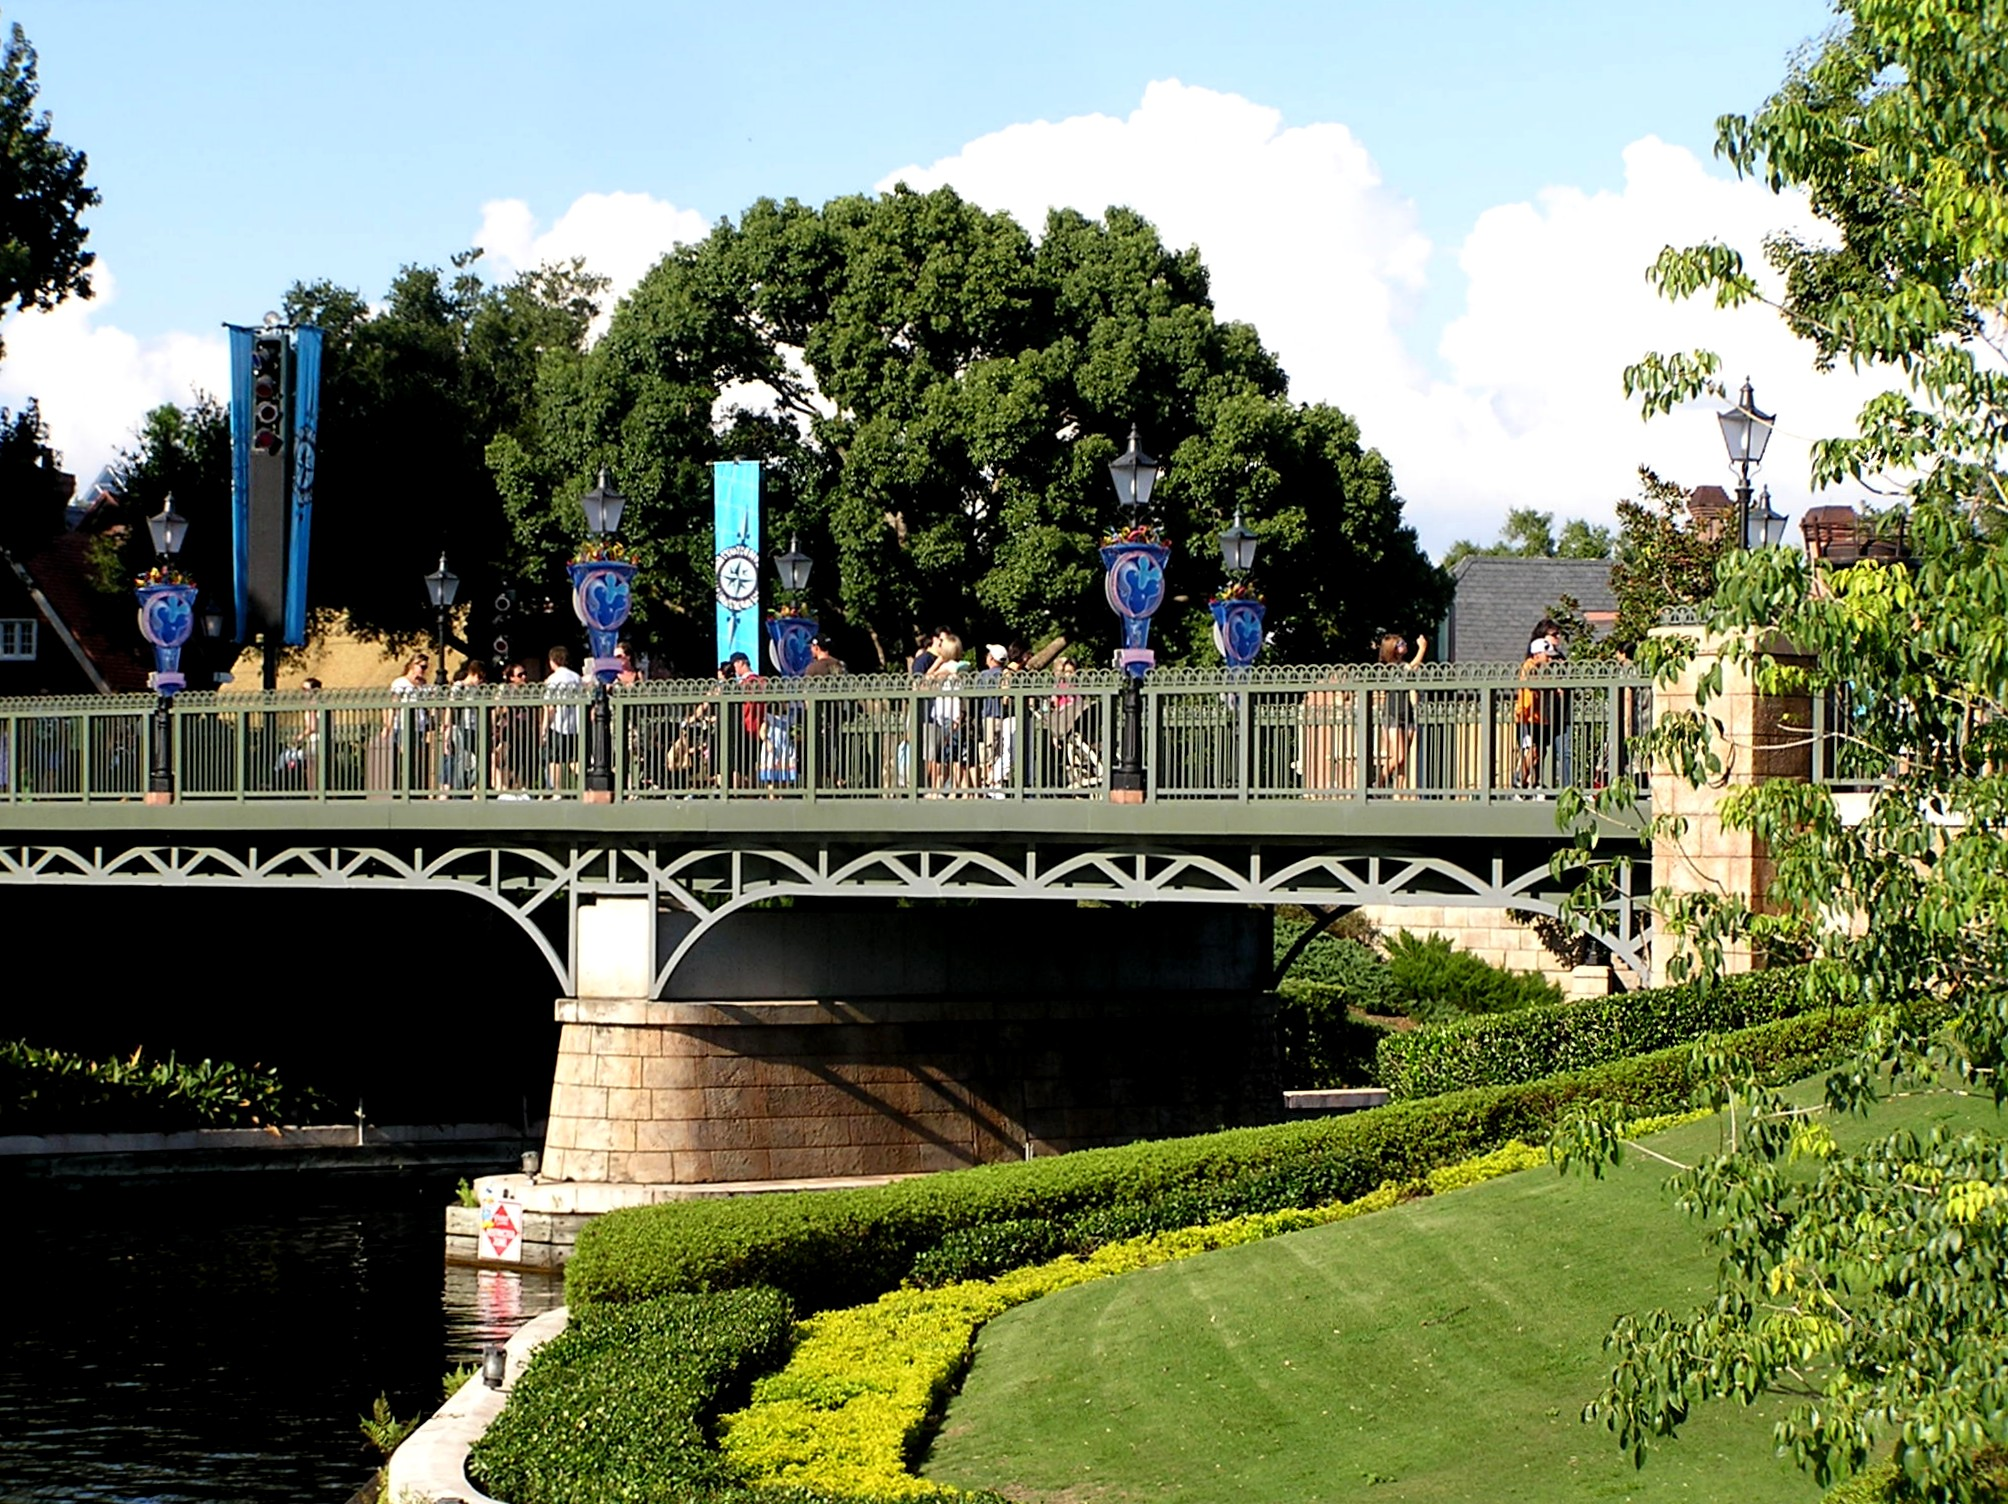 Jud's Disney Photo of the Day: CHANNEL CROSSING